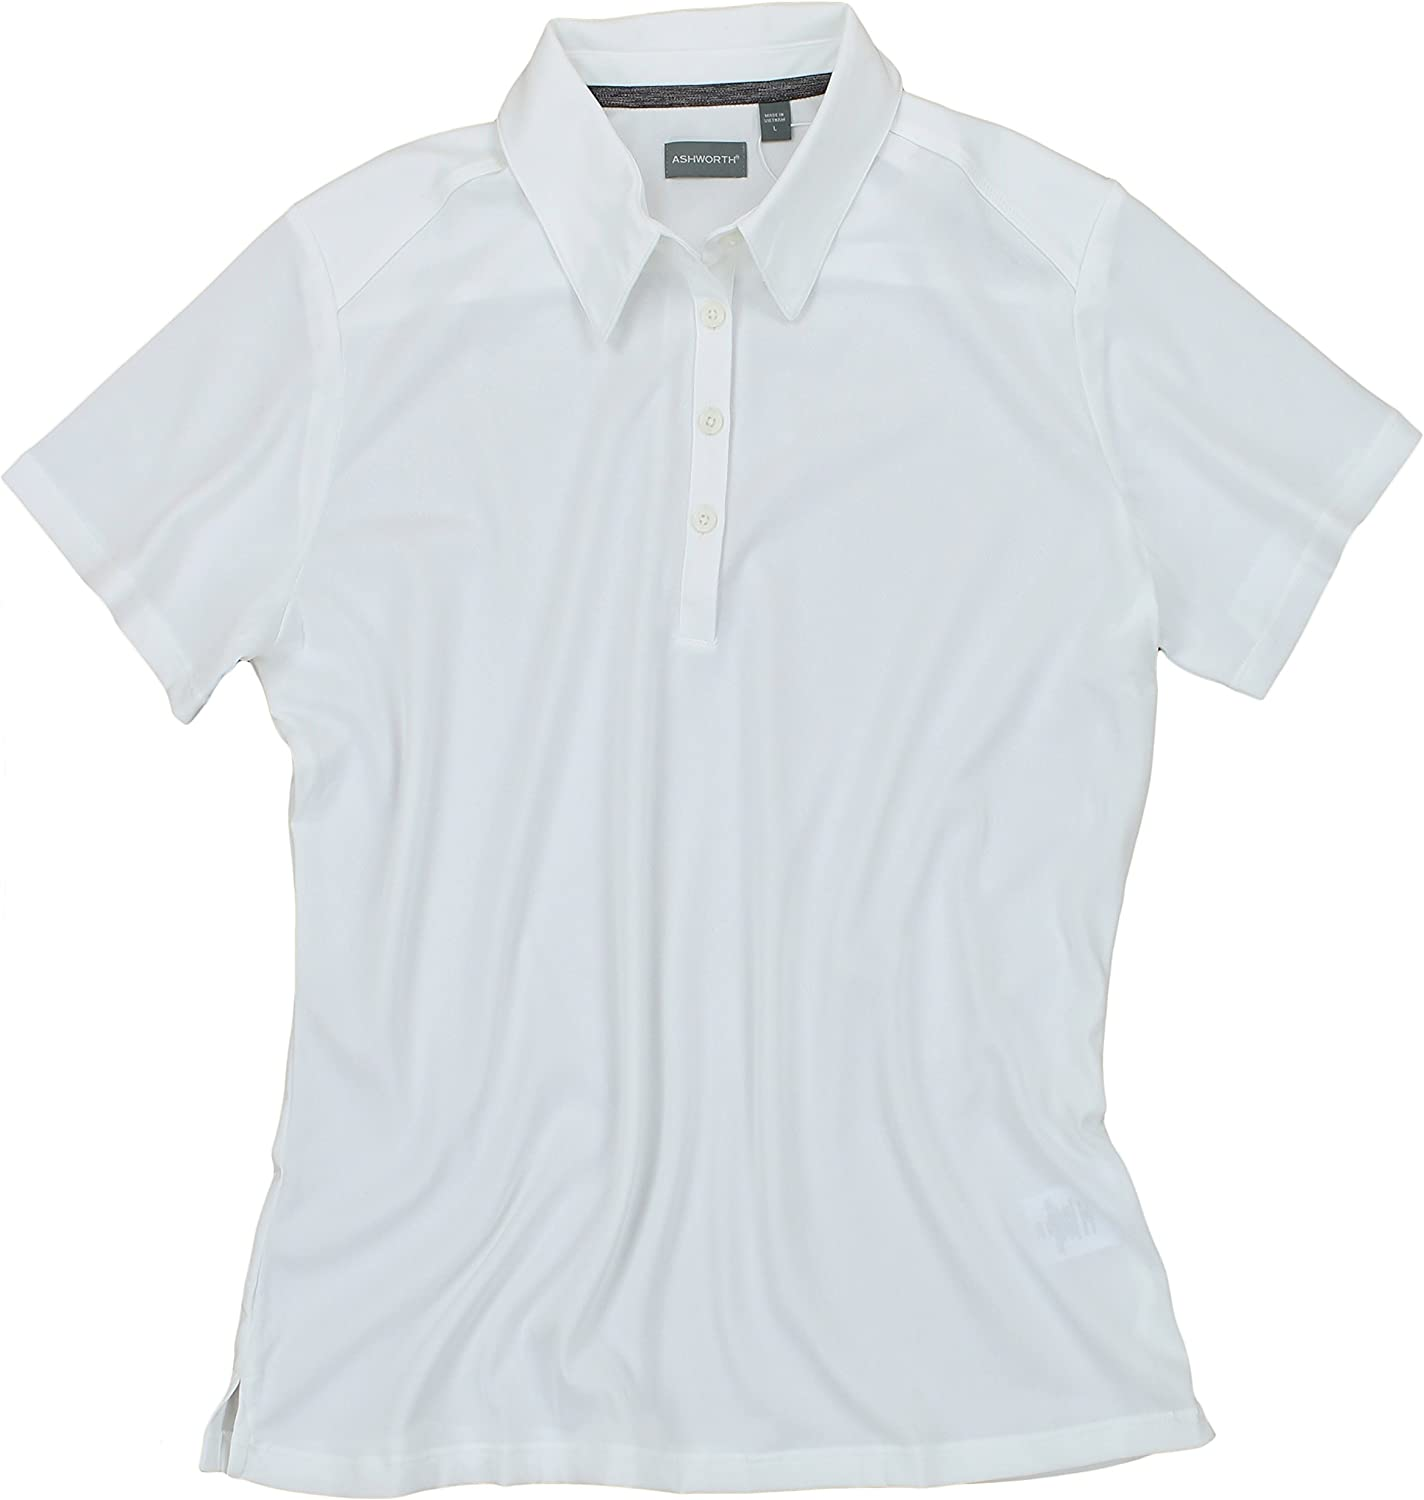 Ashworth Women's EZ-TECH2 4 years warranty Short Sleeve Solid Special Campaign Polo Shirt